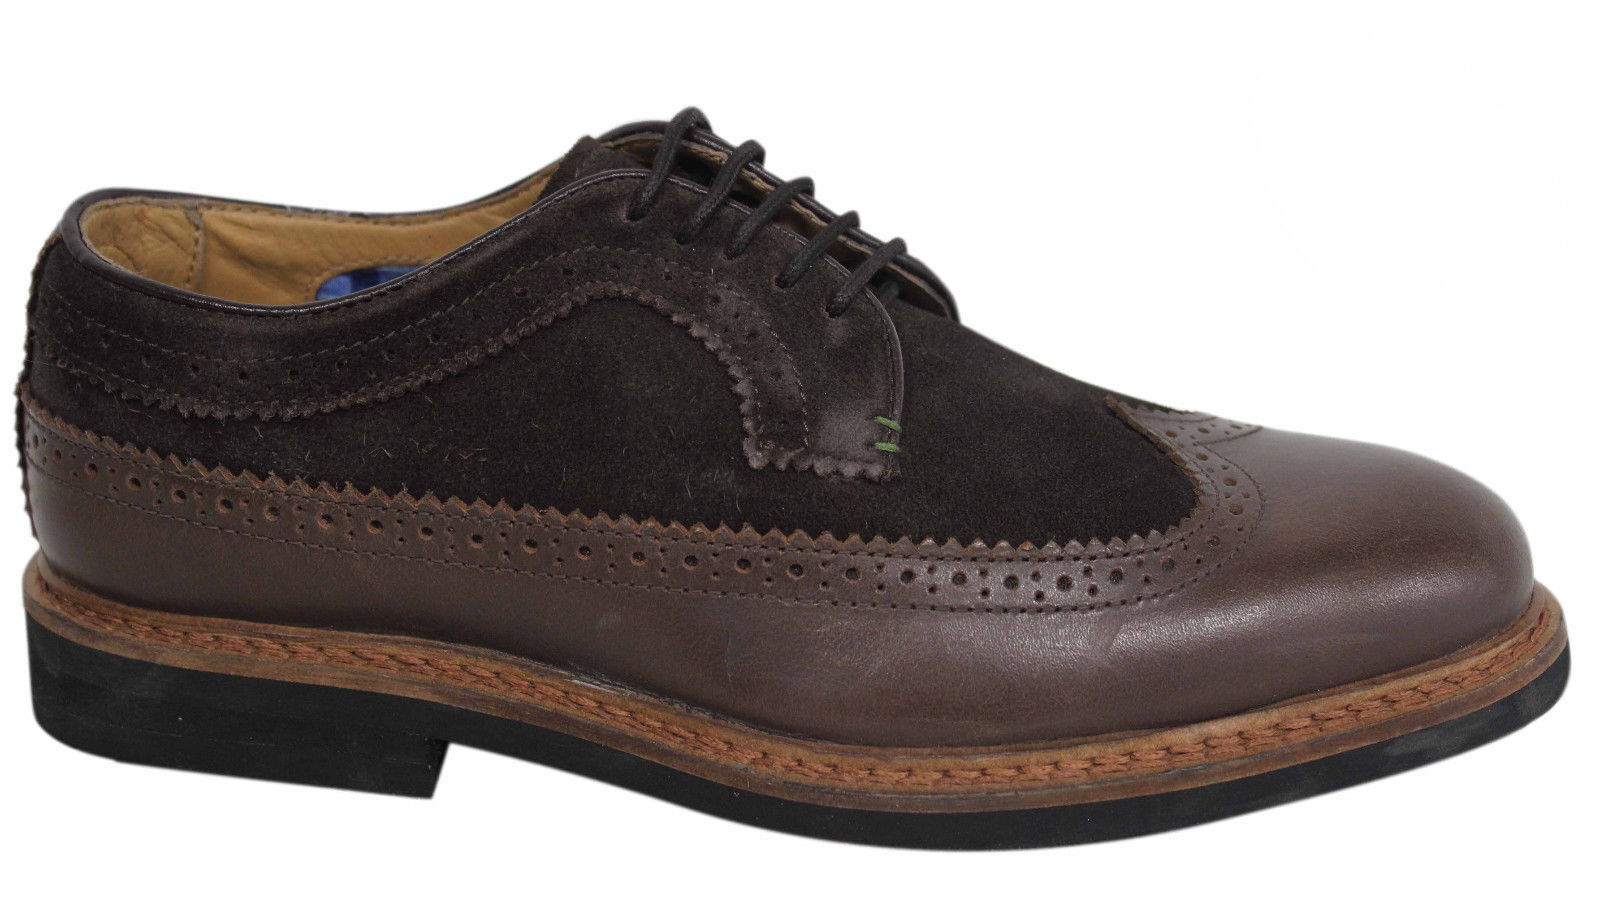 Ben Sherman Garry Peach Lace Up Brown Leather Suede Oxford shoes Brown 002 U20